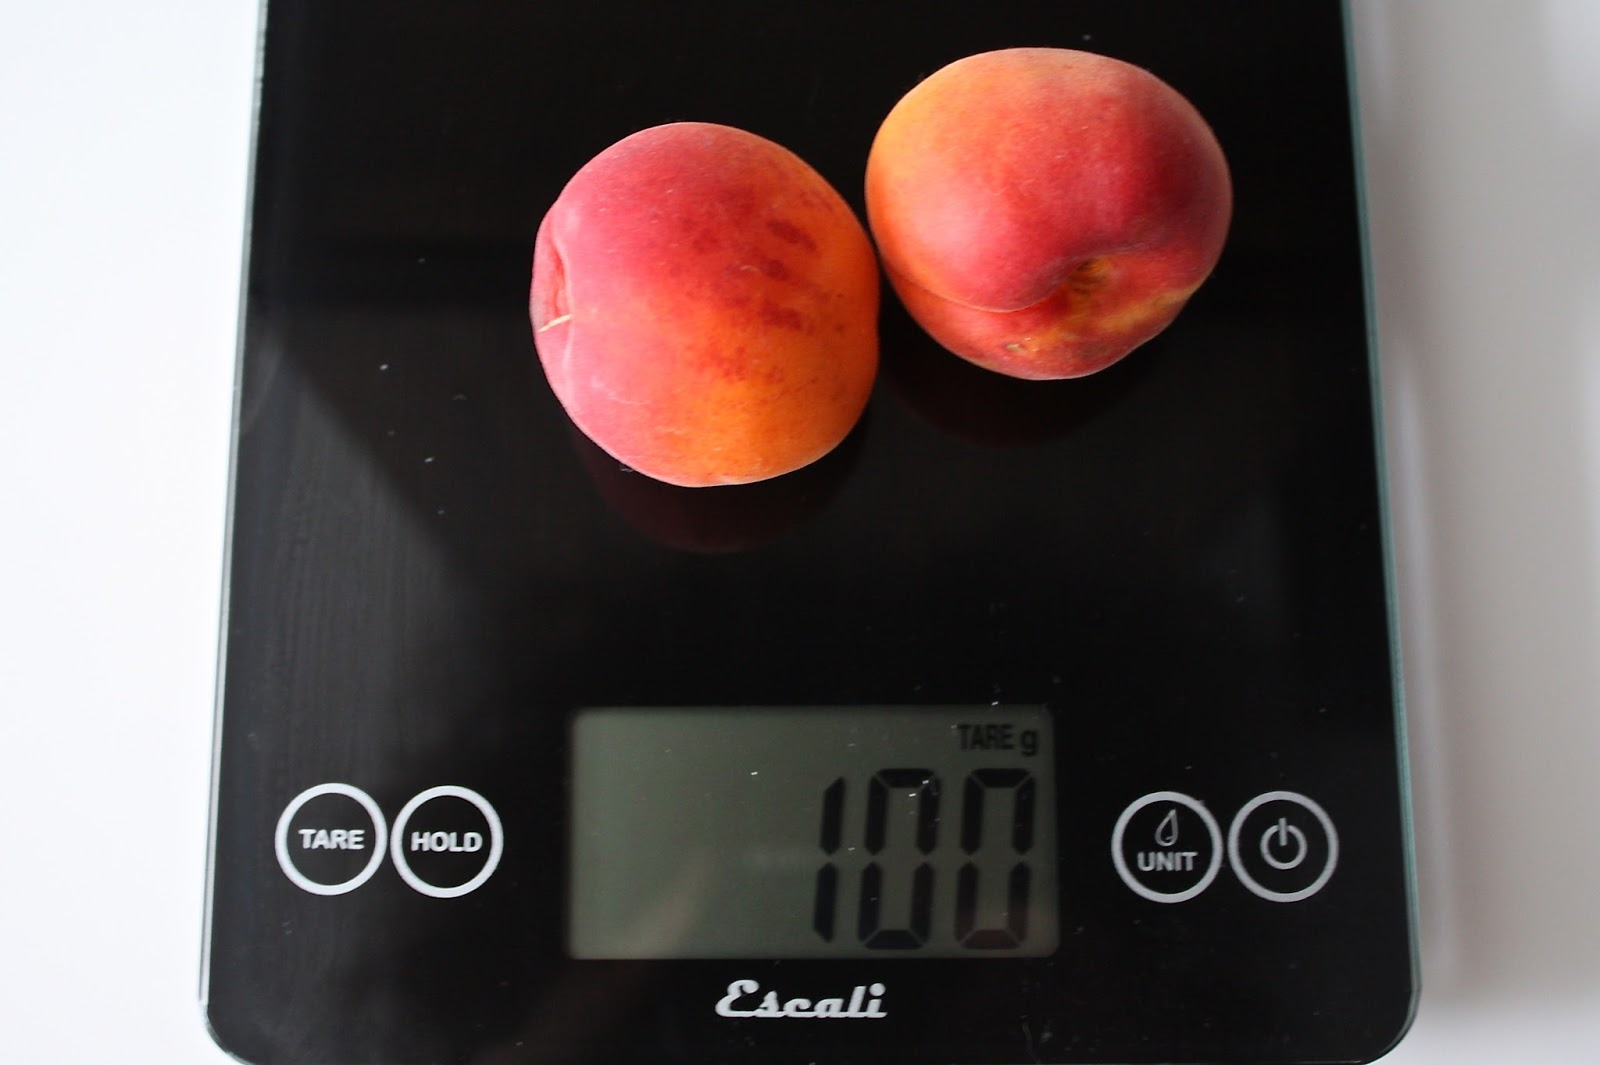 100 grams of apricots measured on a digital scale